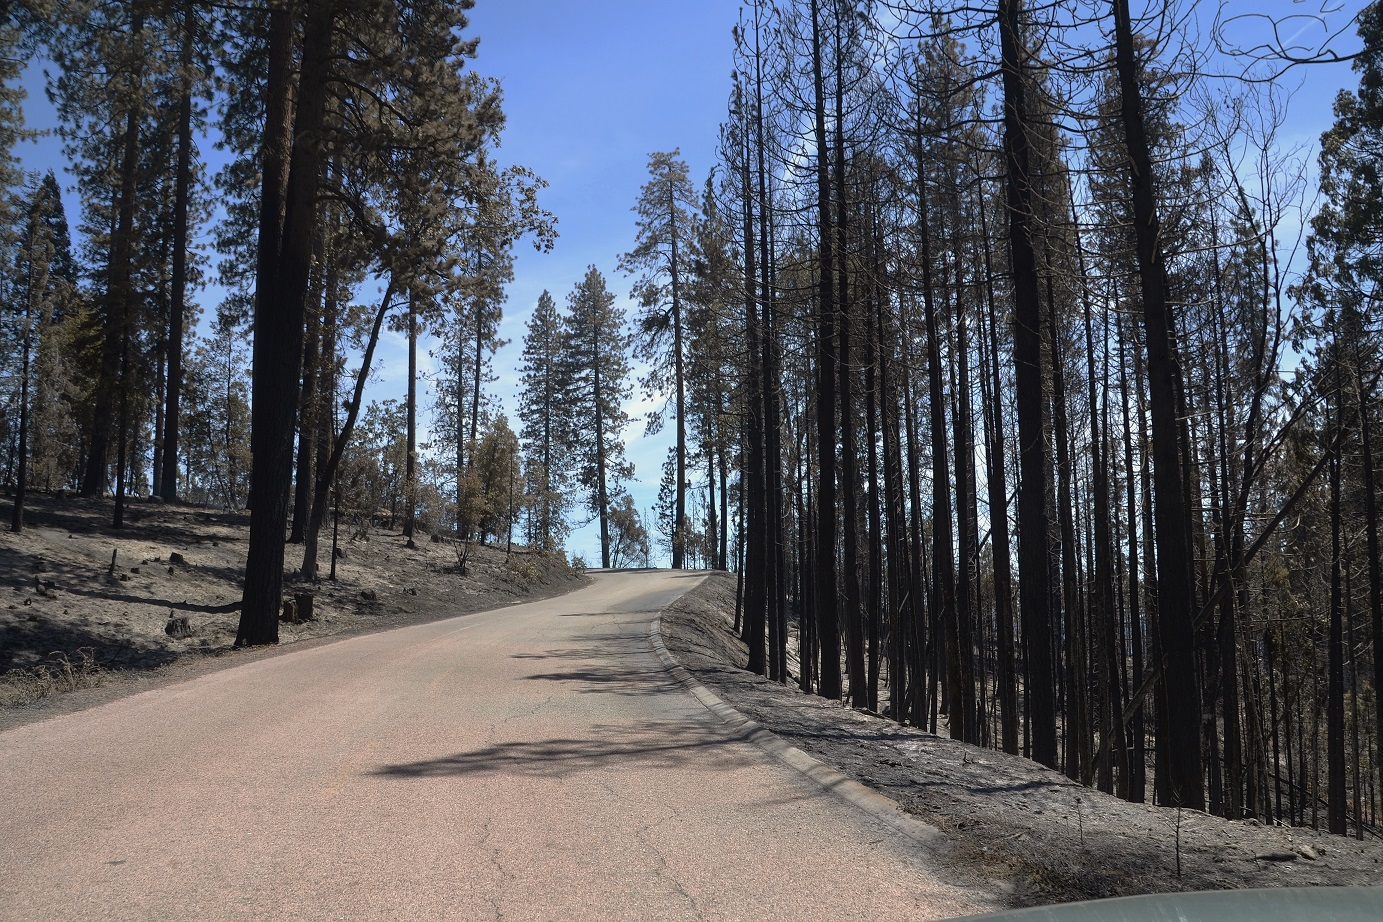 Burnt trees along the road - photo by Gina Clugston